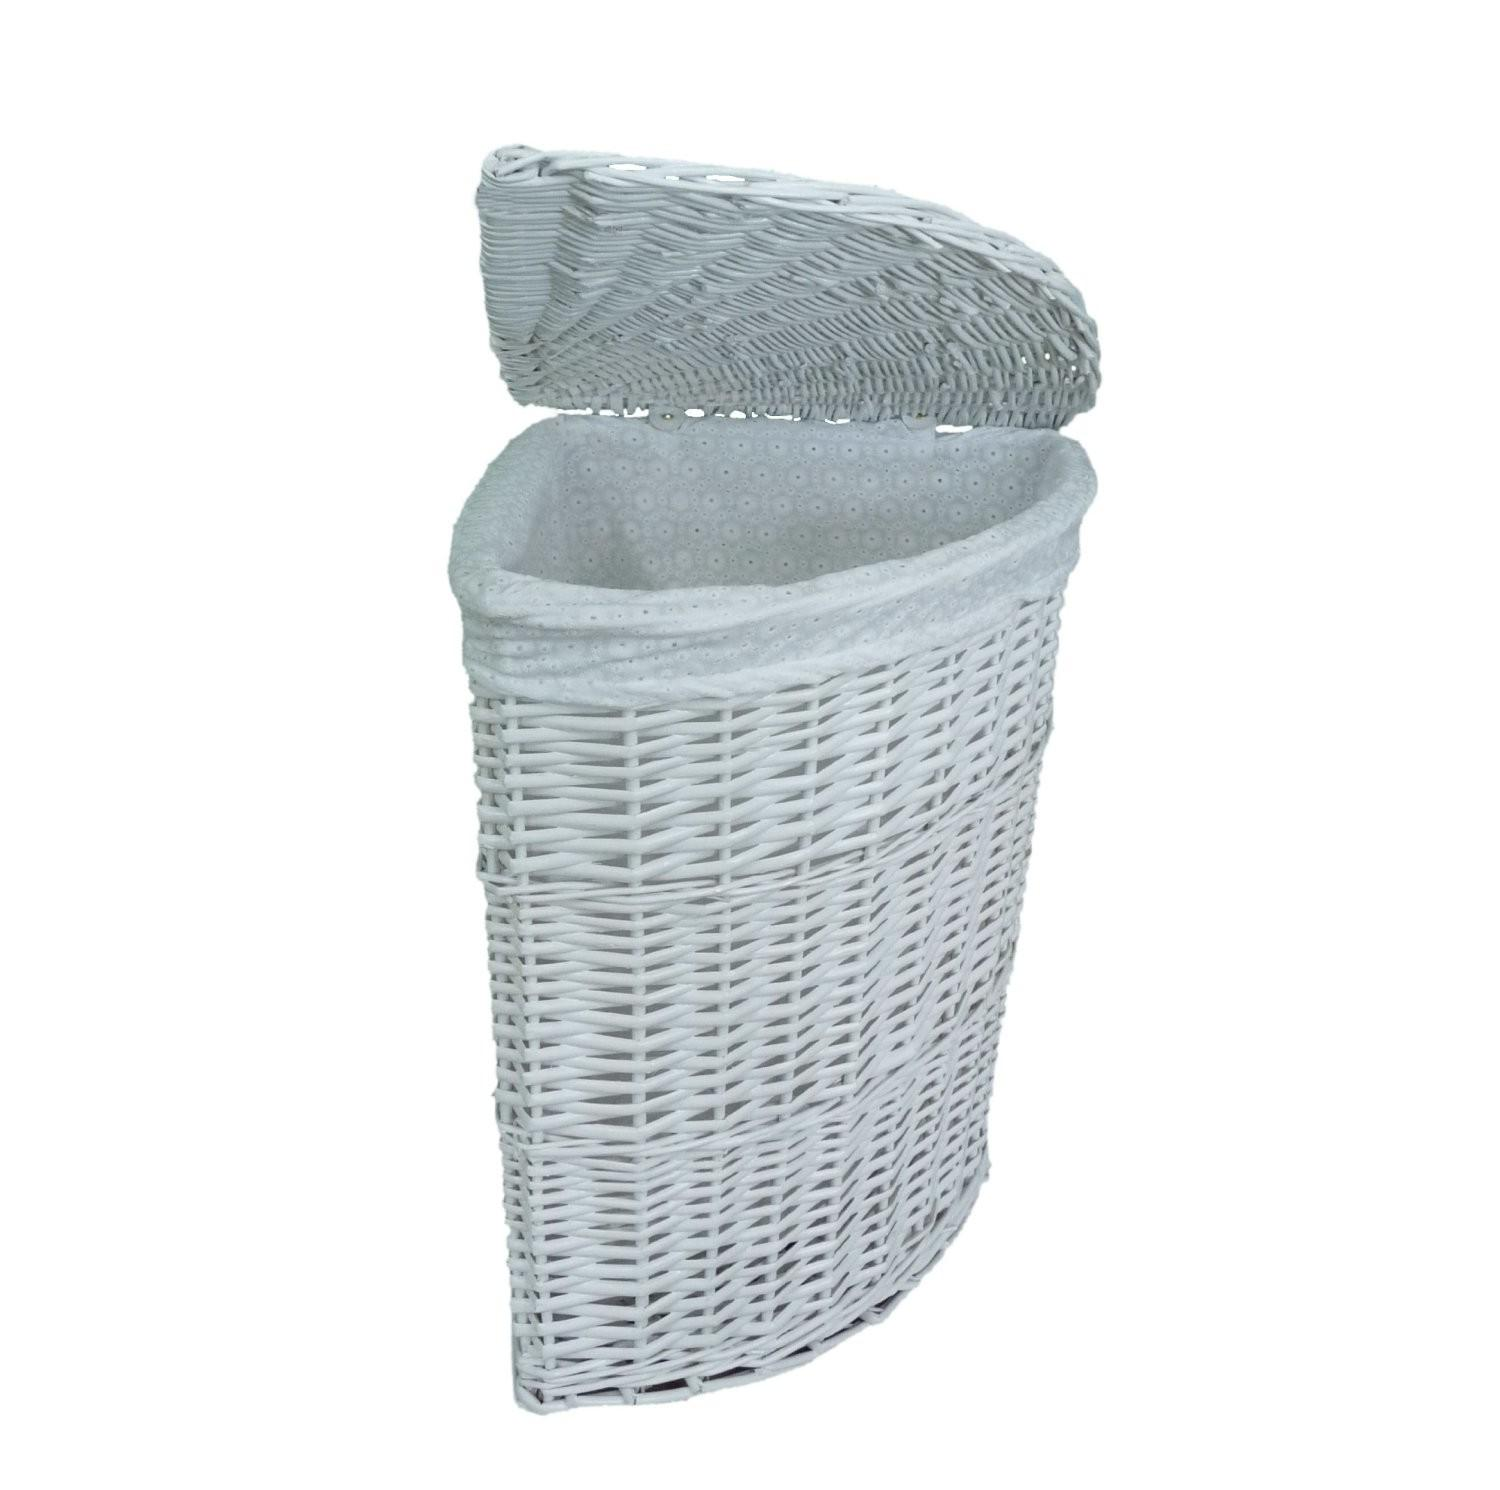 Furniture White Wicker Laundry Basket Your